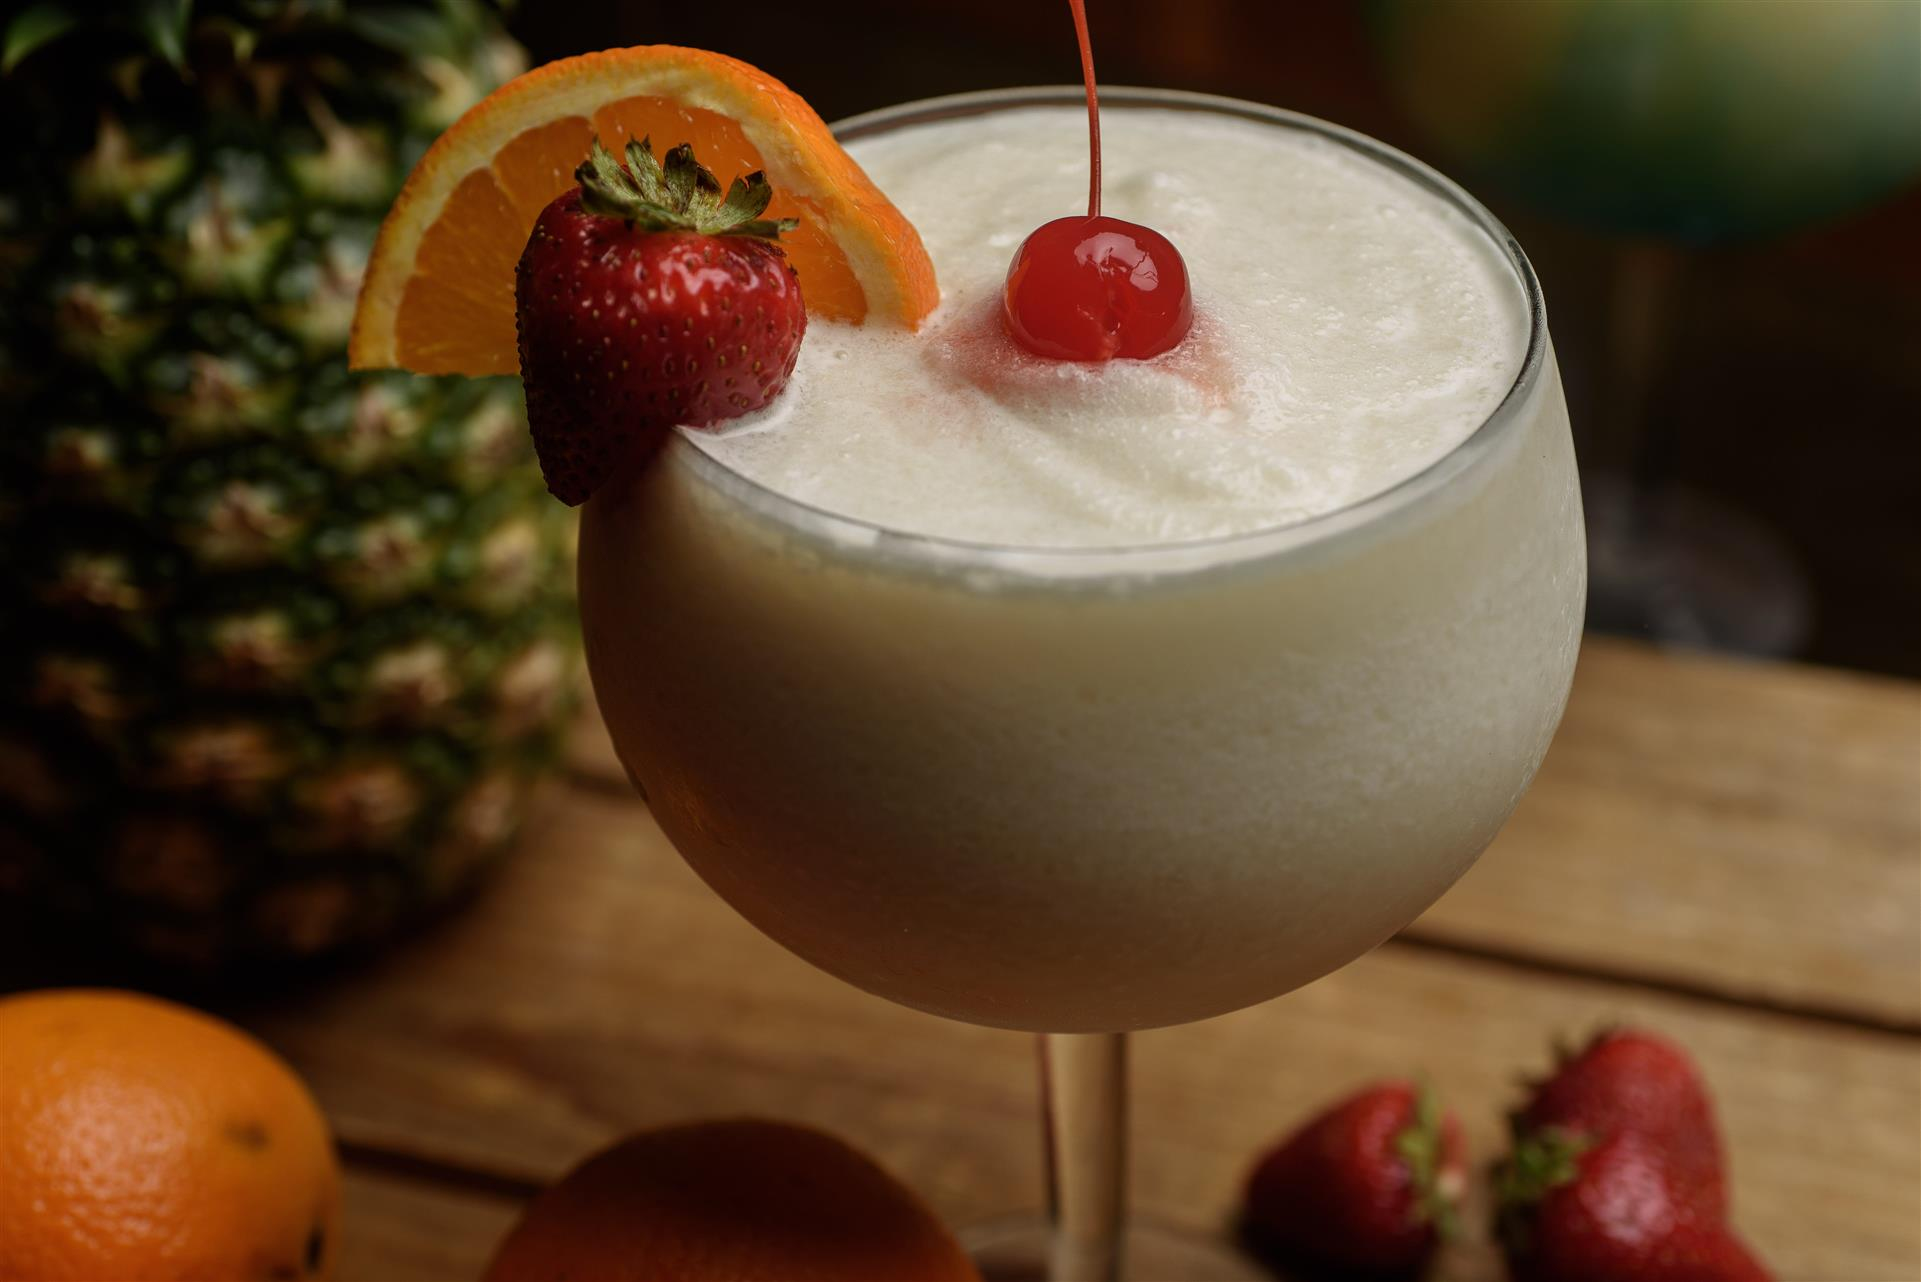 Beige colored drink in margarita glass with strawberry, lime, orange, and cherry